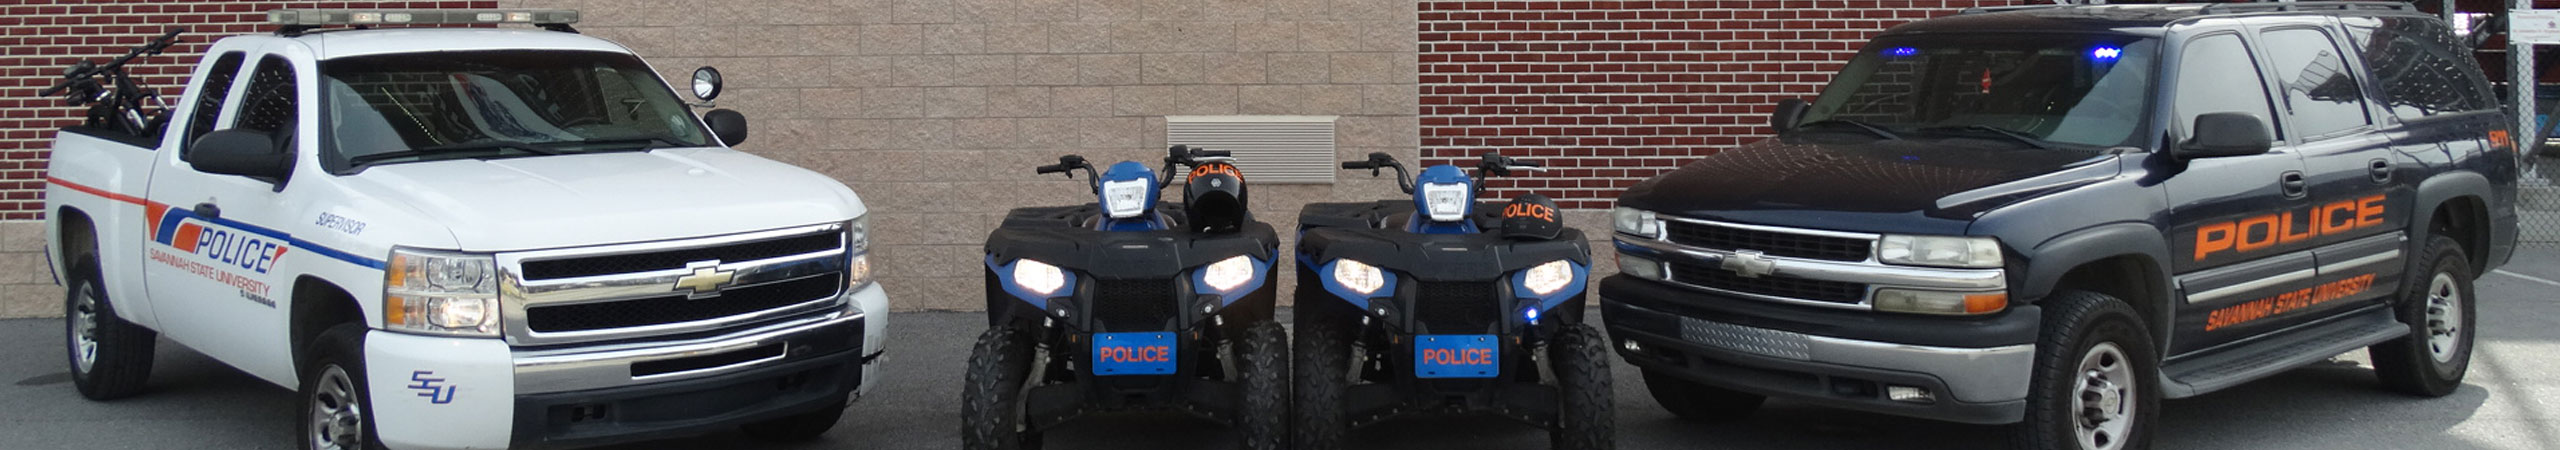 Savannah State University public safety trucks and atvs